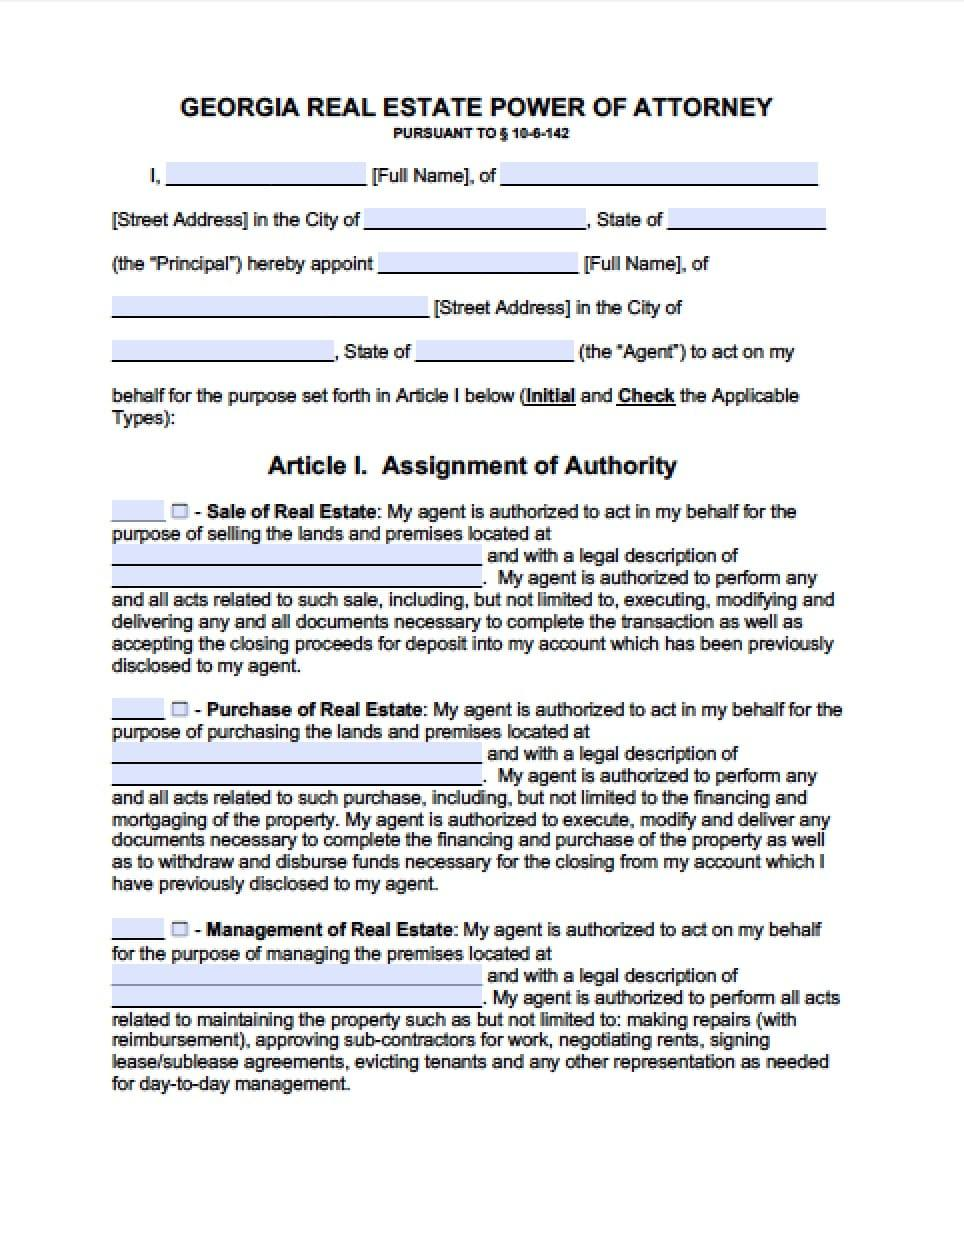 Forms For Power Of Attorney In Georgia